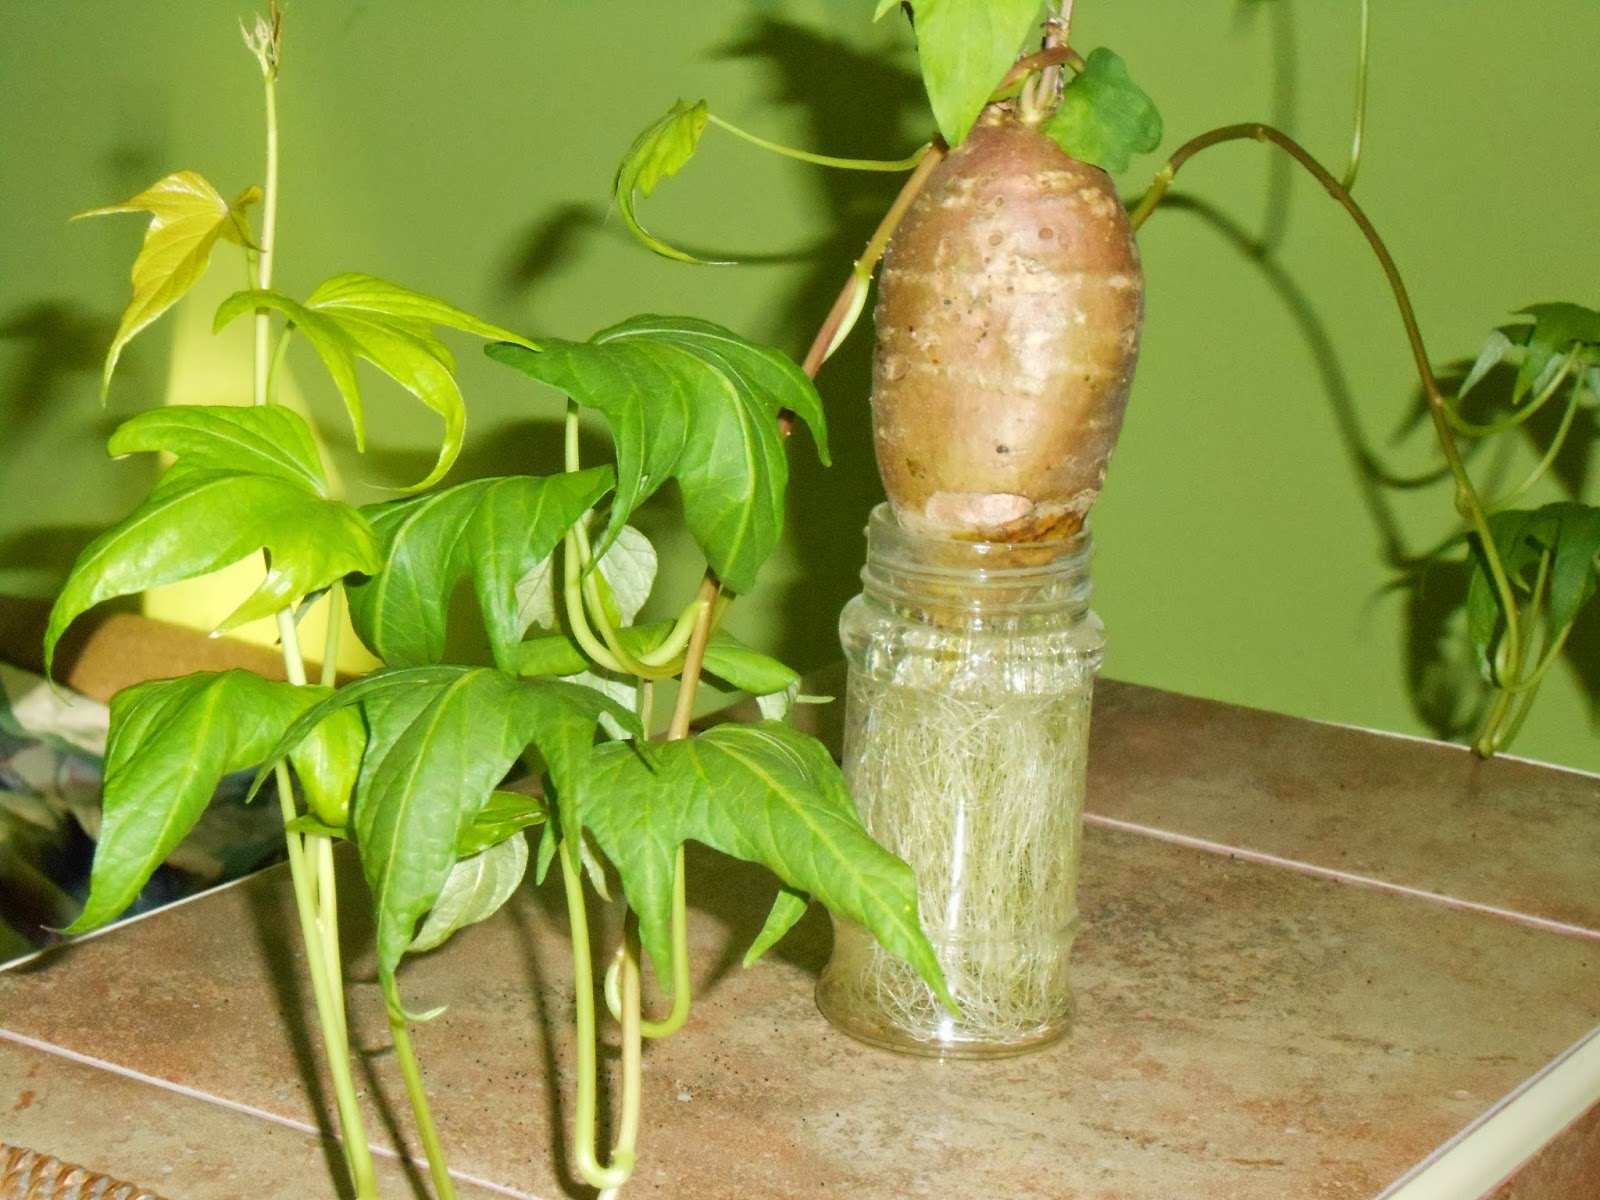 Growing sweet potato slips indoors.